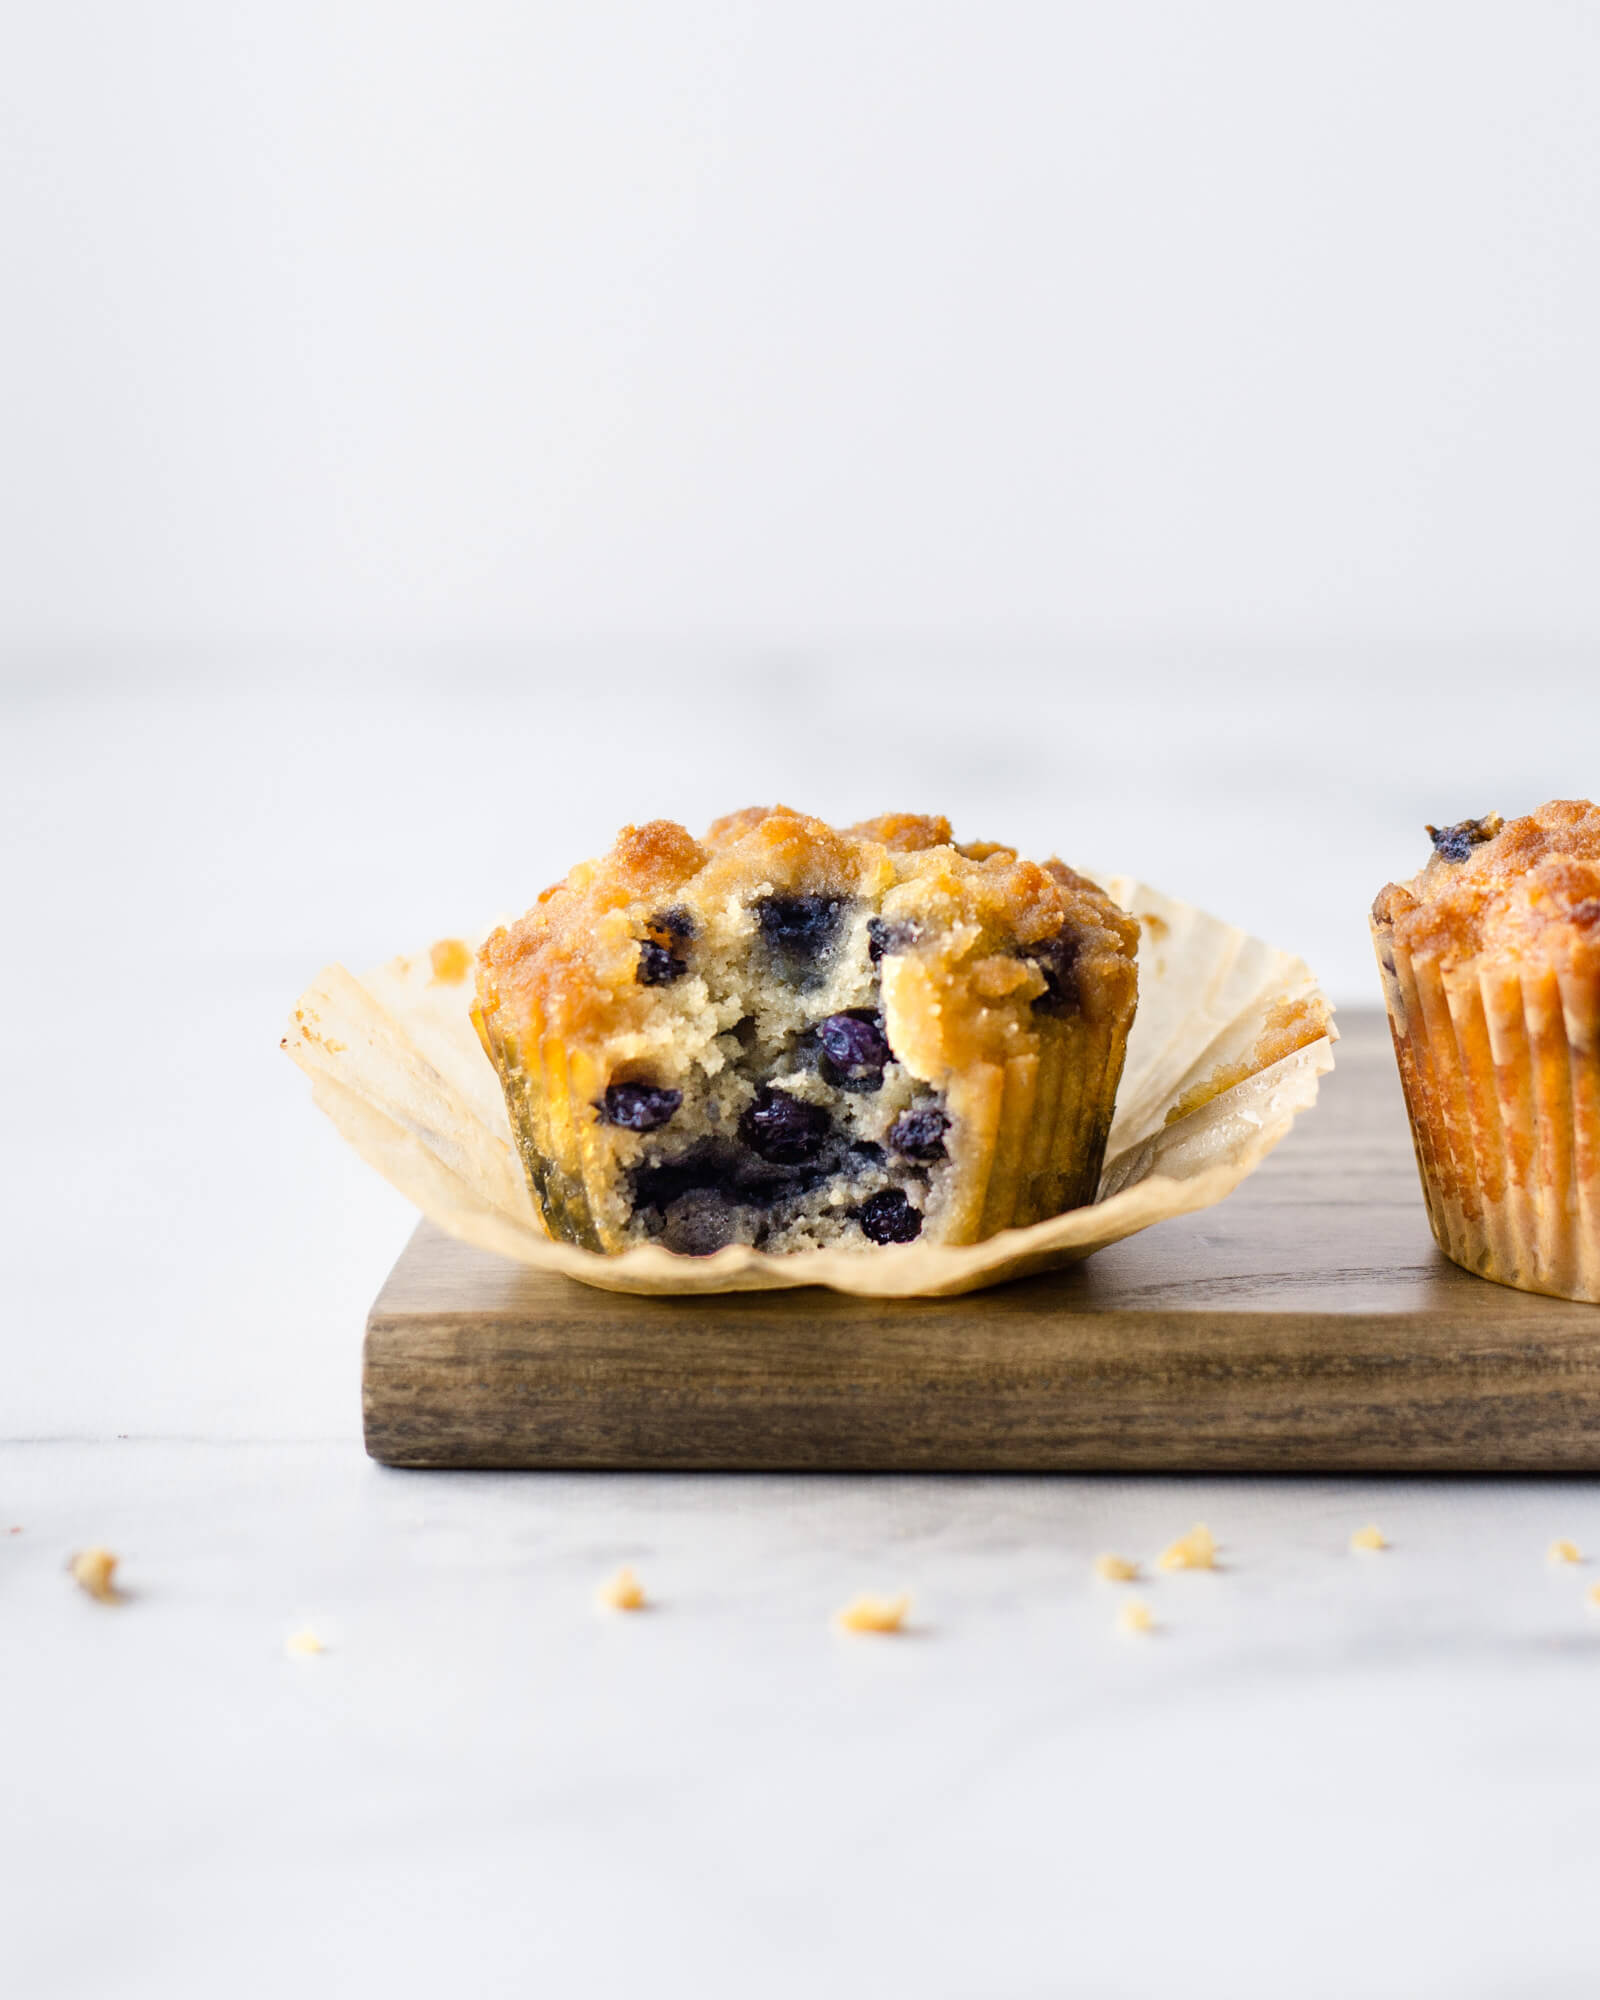 The best low carb blueberry muffin recipe made with coconut flour shown on wood cutting board and nonstick parchment muffin liner with bite taken and crumble topping